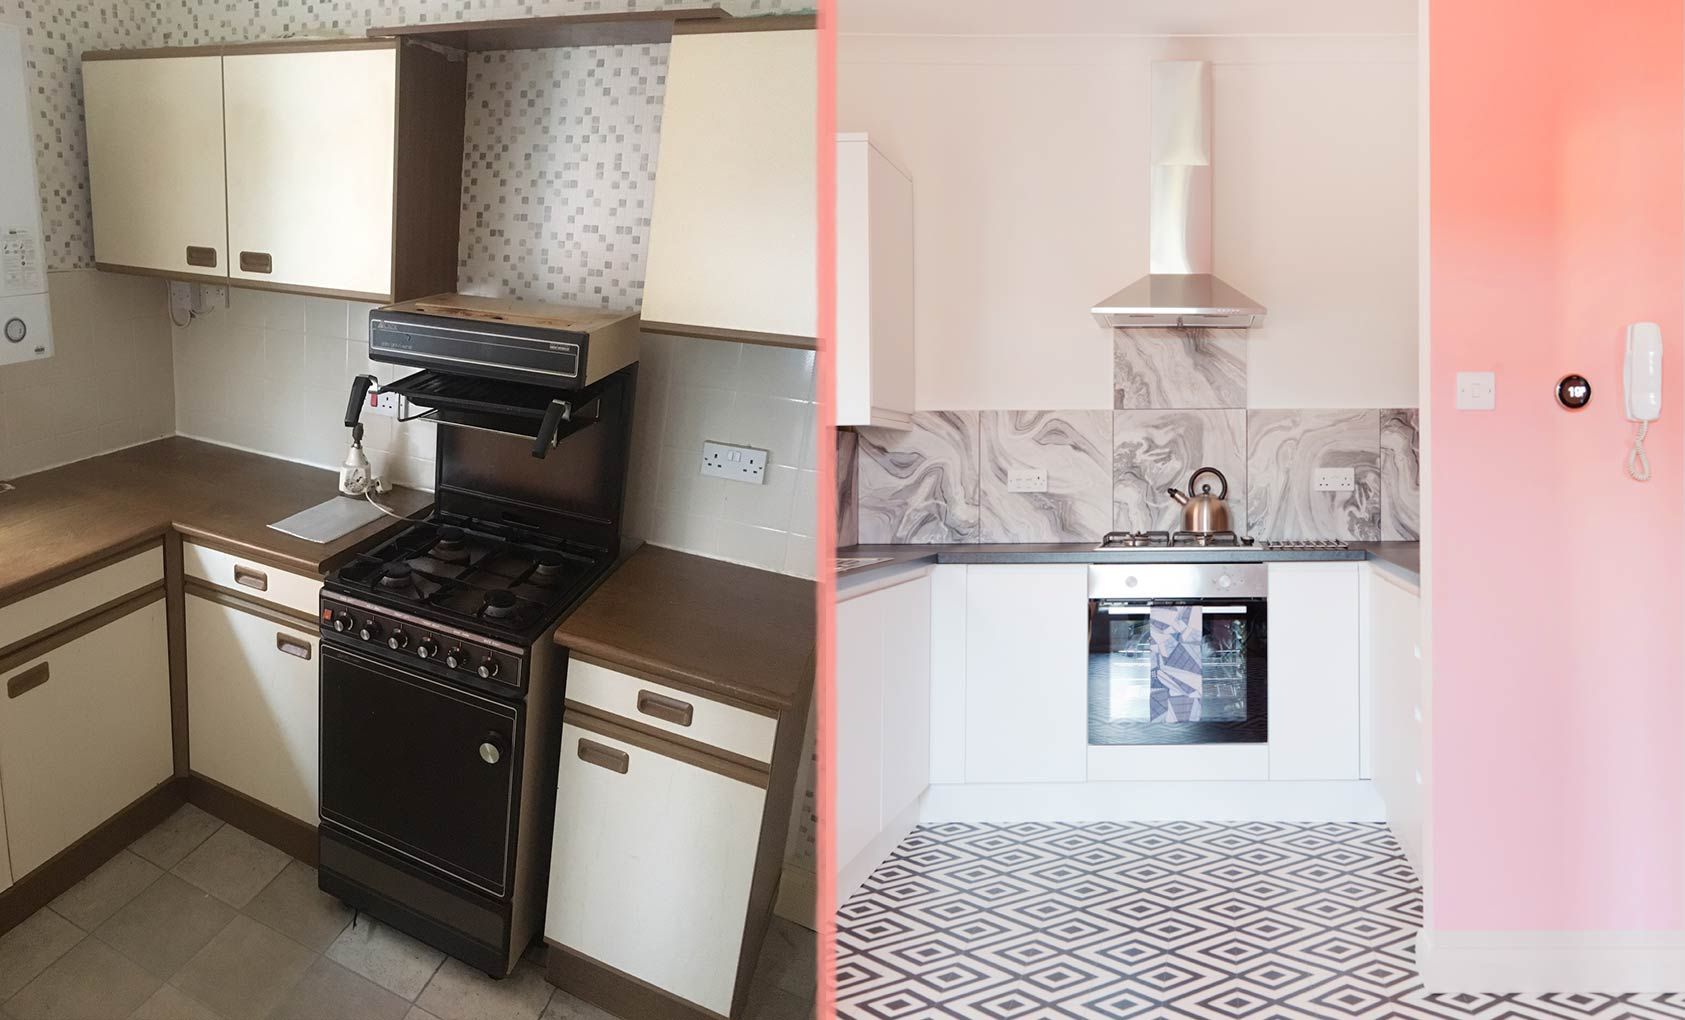 Before & After: An English Rental Brings the Drama, Design*Sponge